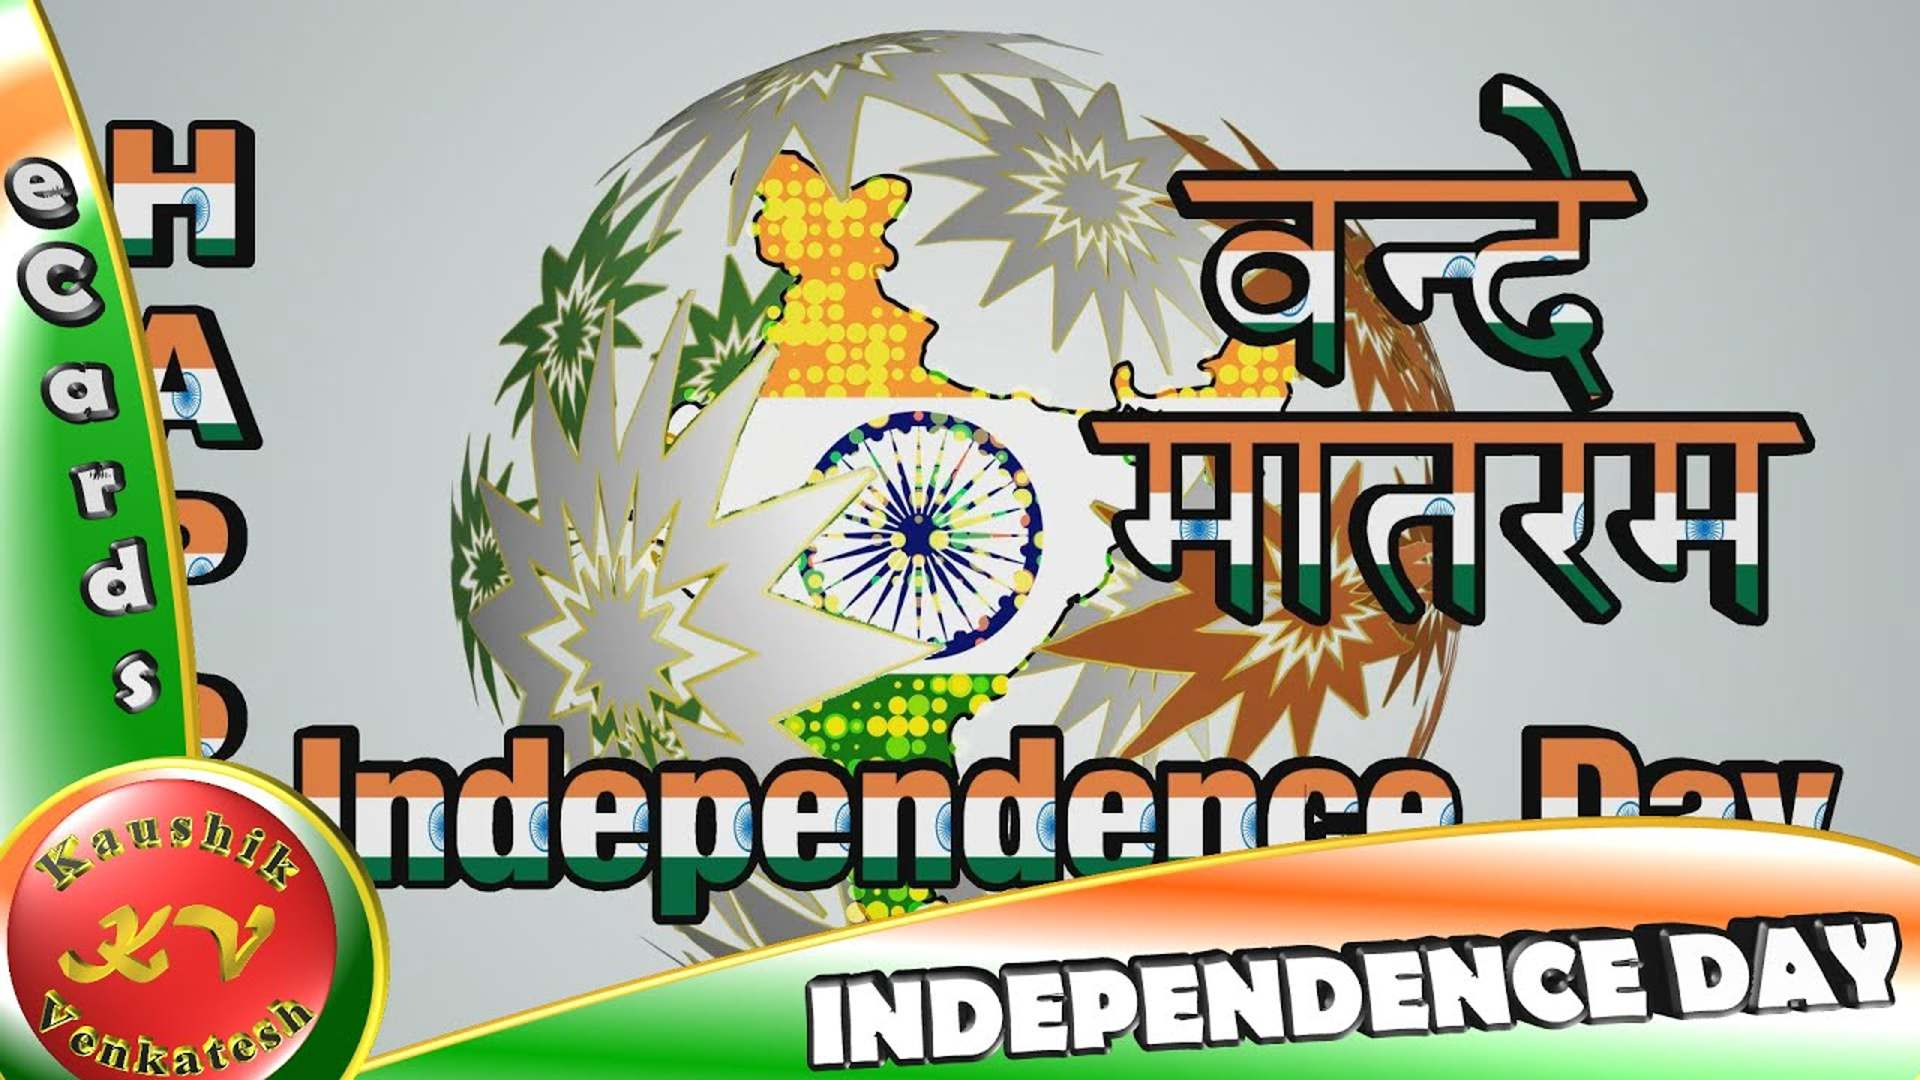 Image of Happy Independence Day Wishes in Hindi